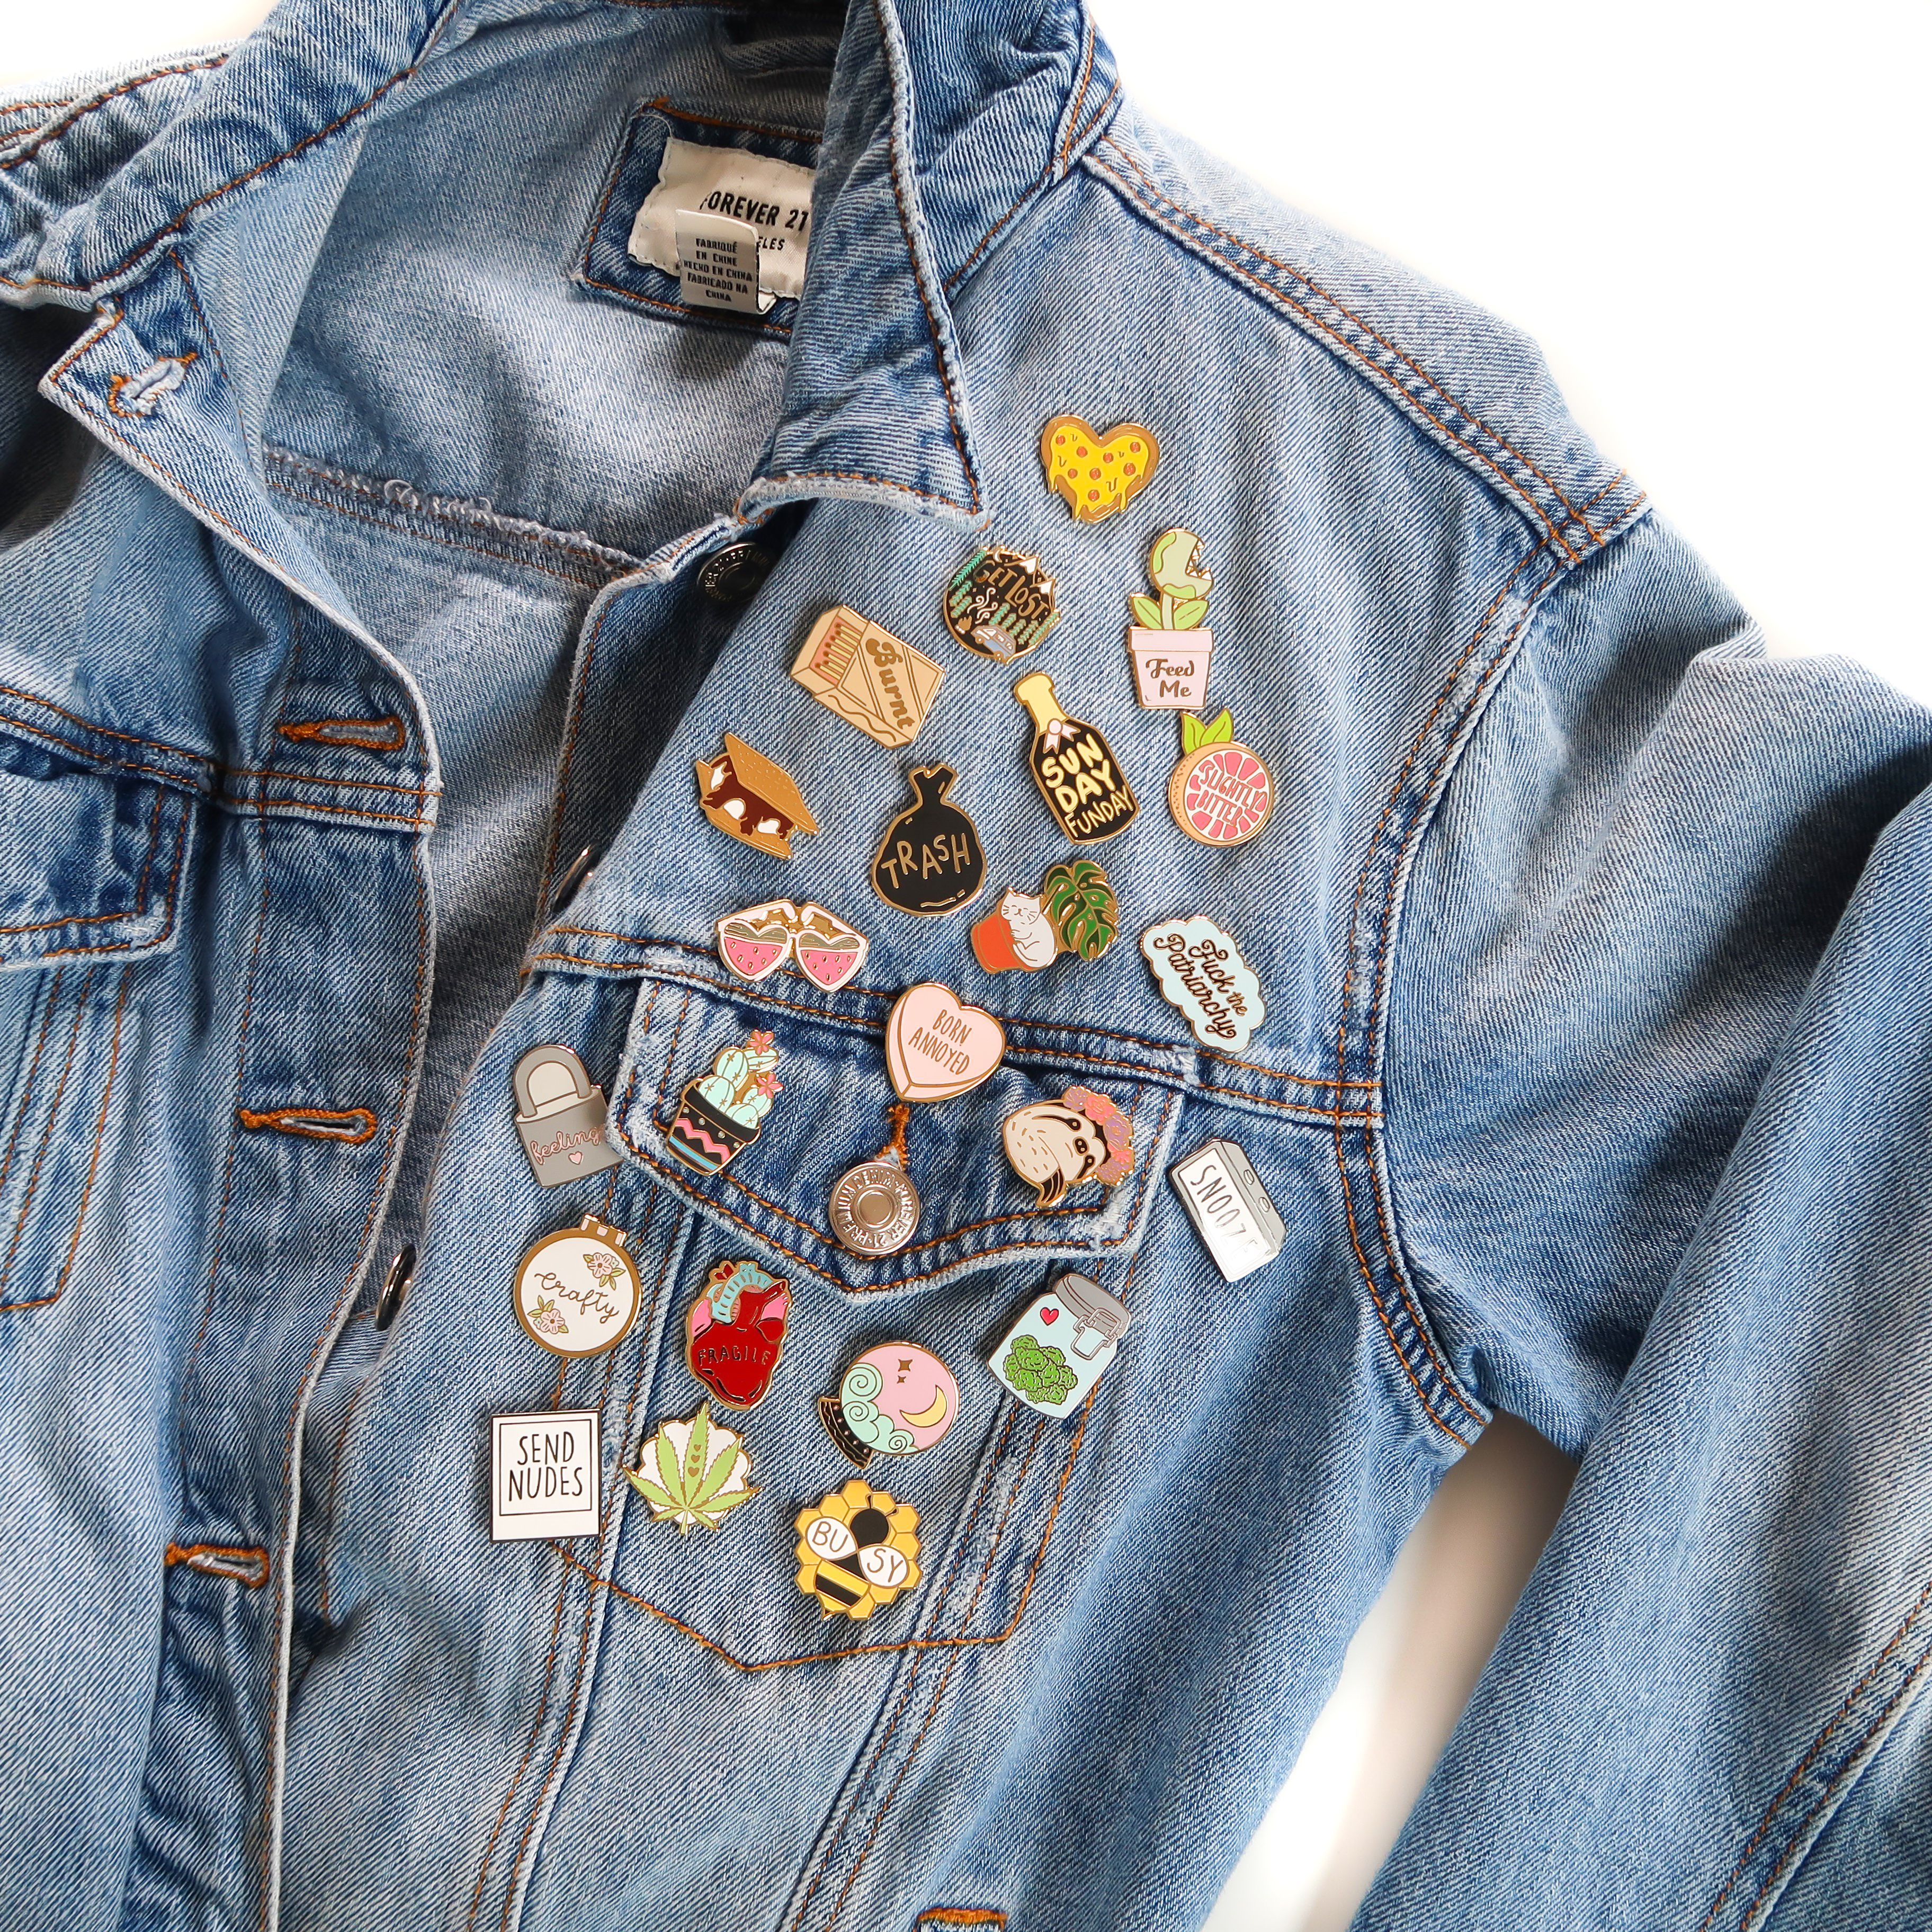 Enamel Pins Styles On Jean Jacket Outfit Jeanajacket Jeanjacketoutfit Enamelpins Enamelpin Pins On Denim Jacket Jean Jacket Outfits Jean Jacket Patches [ 3648 x 3648 Pixel ]